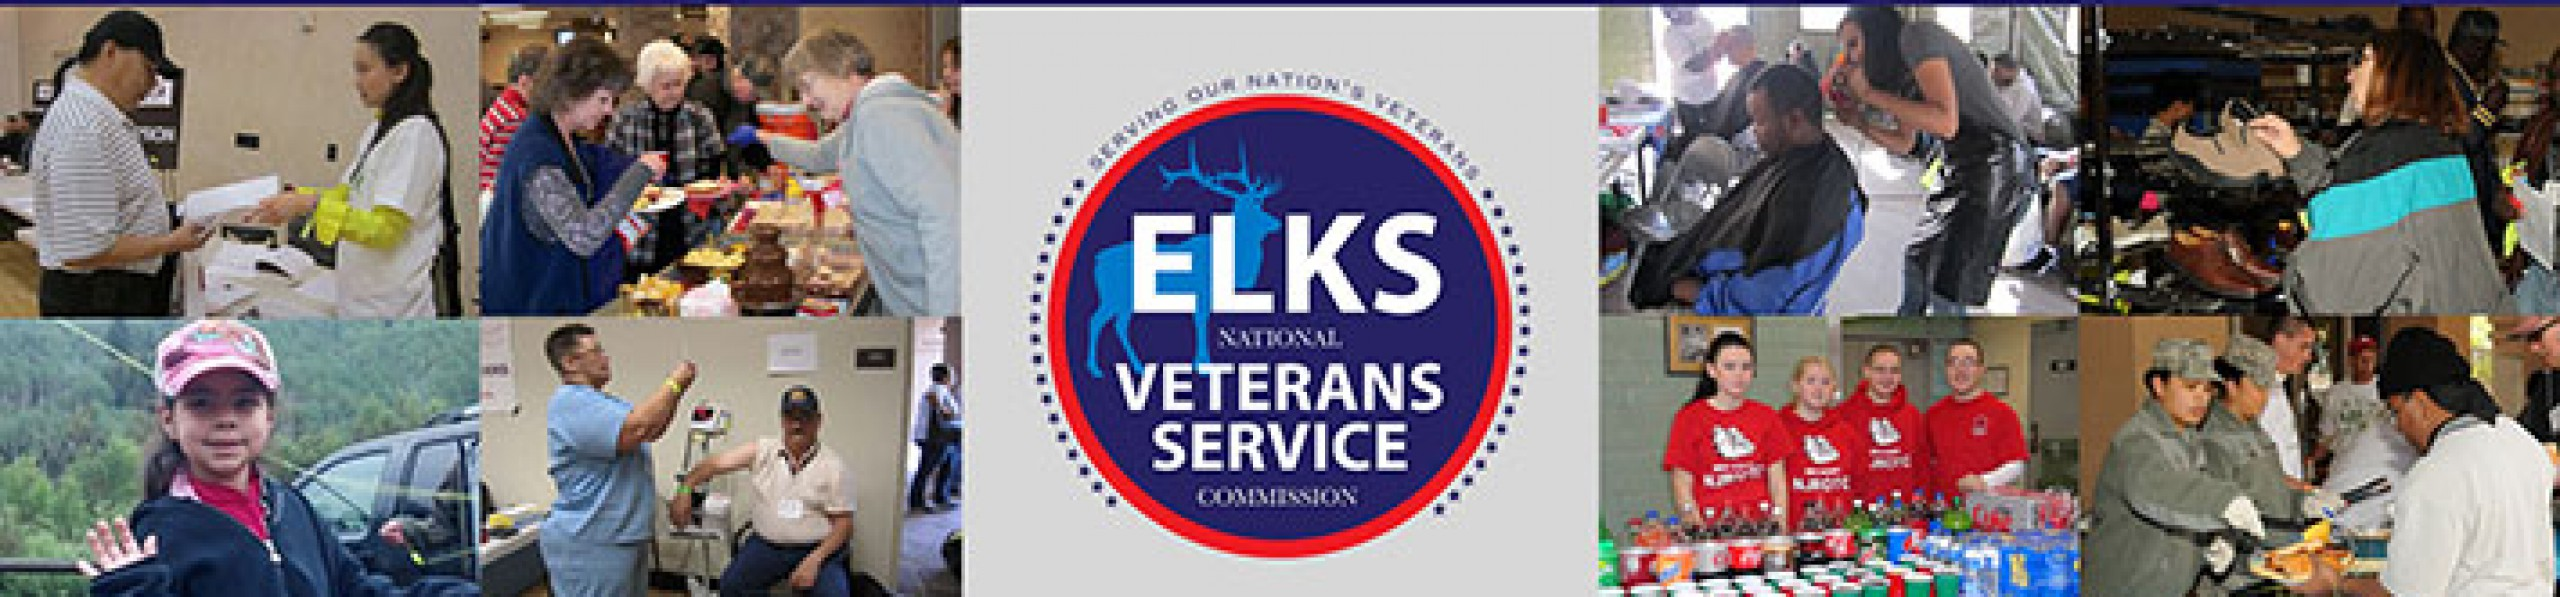 Elks National Veterans Service Commission Blog